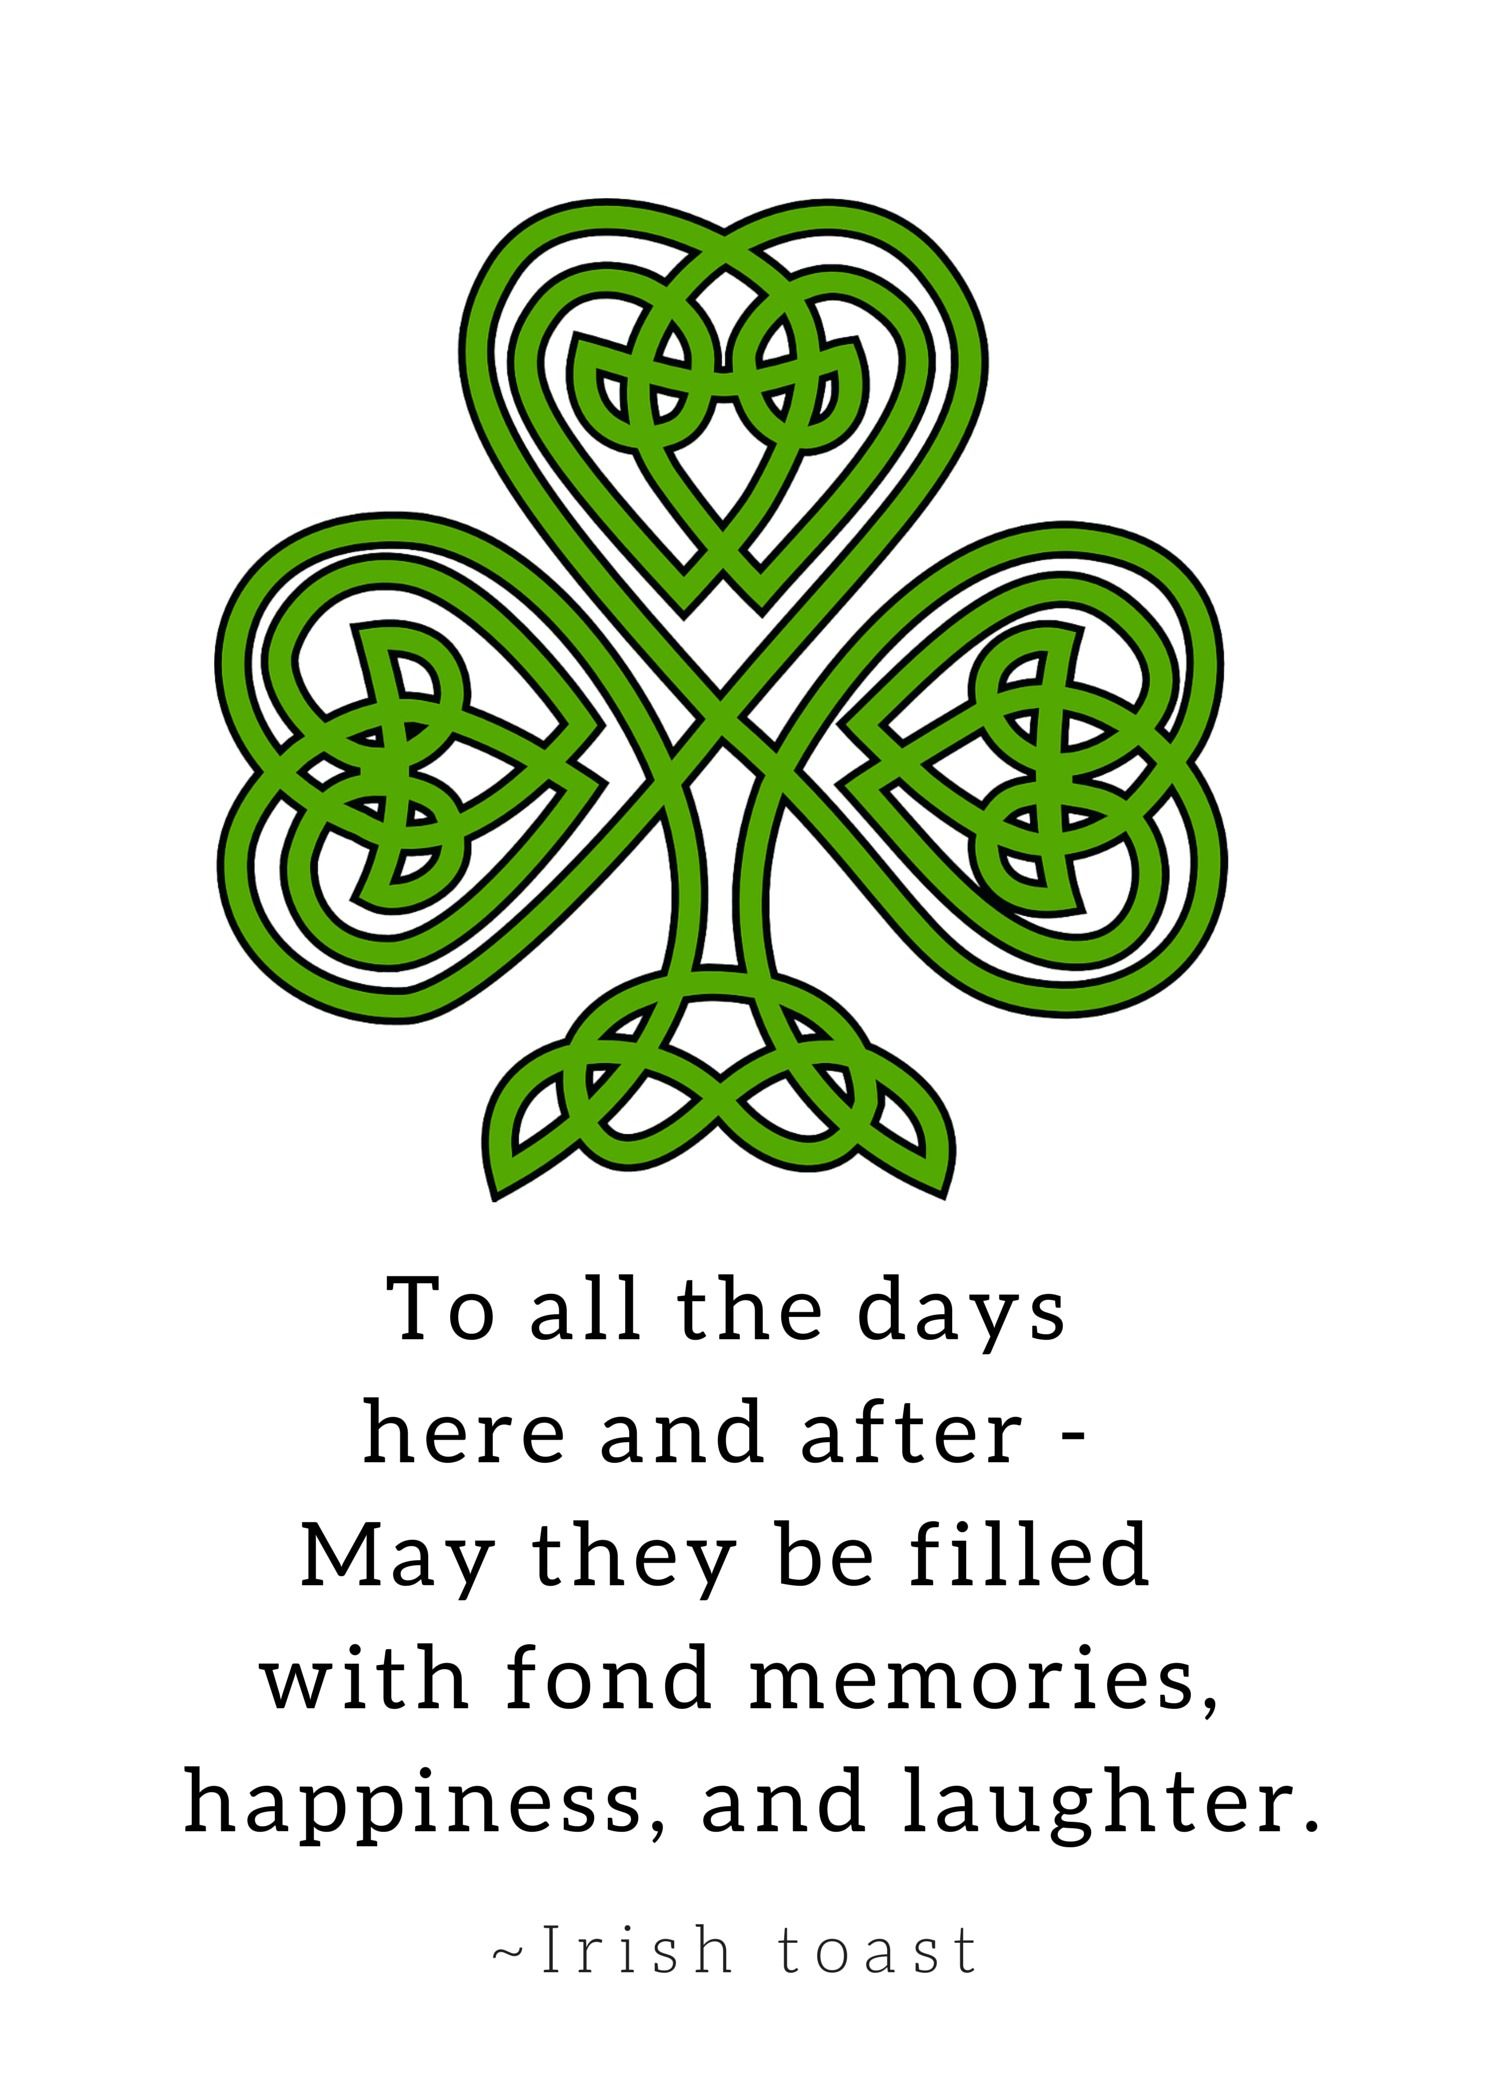 St.Petty's Day Message